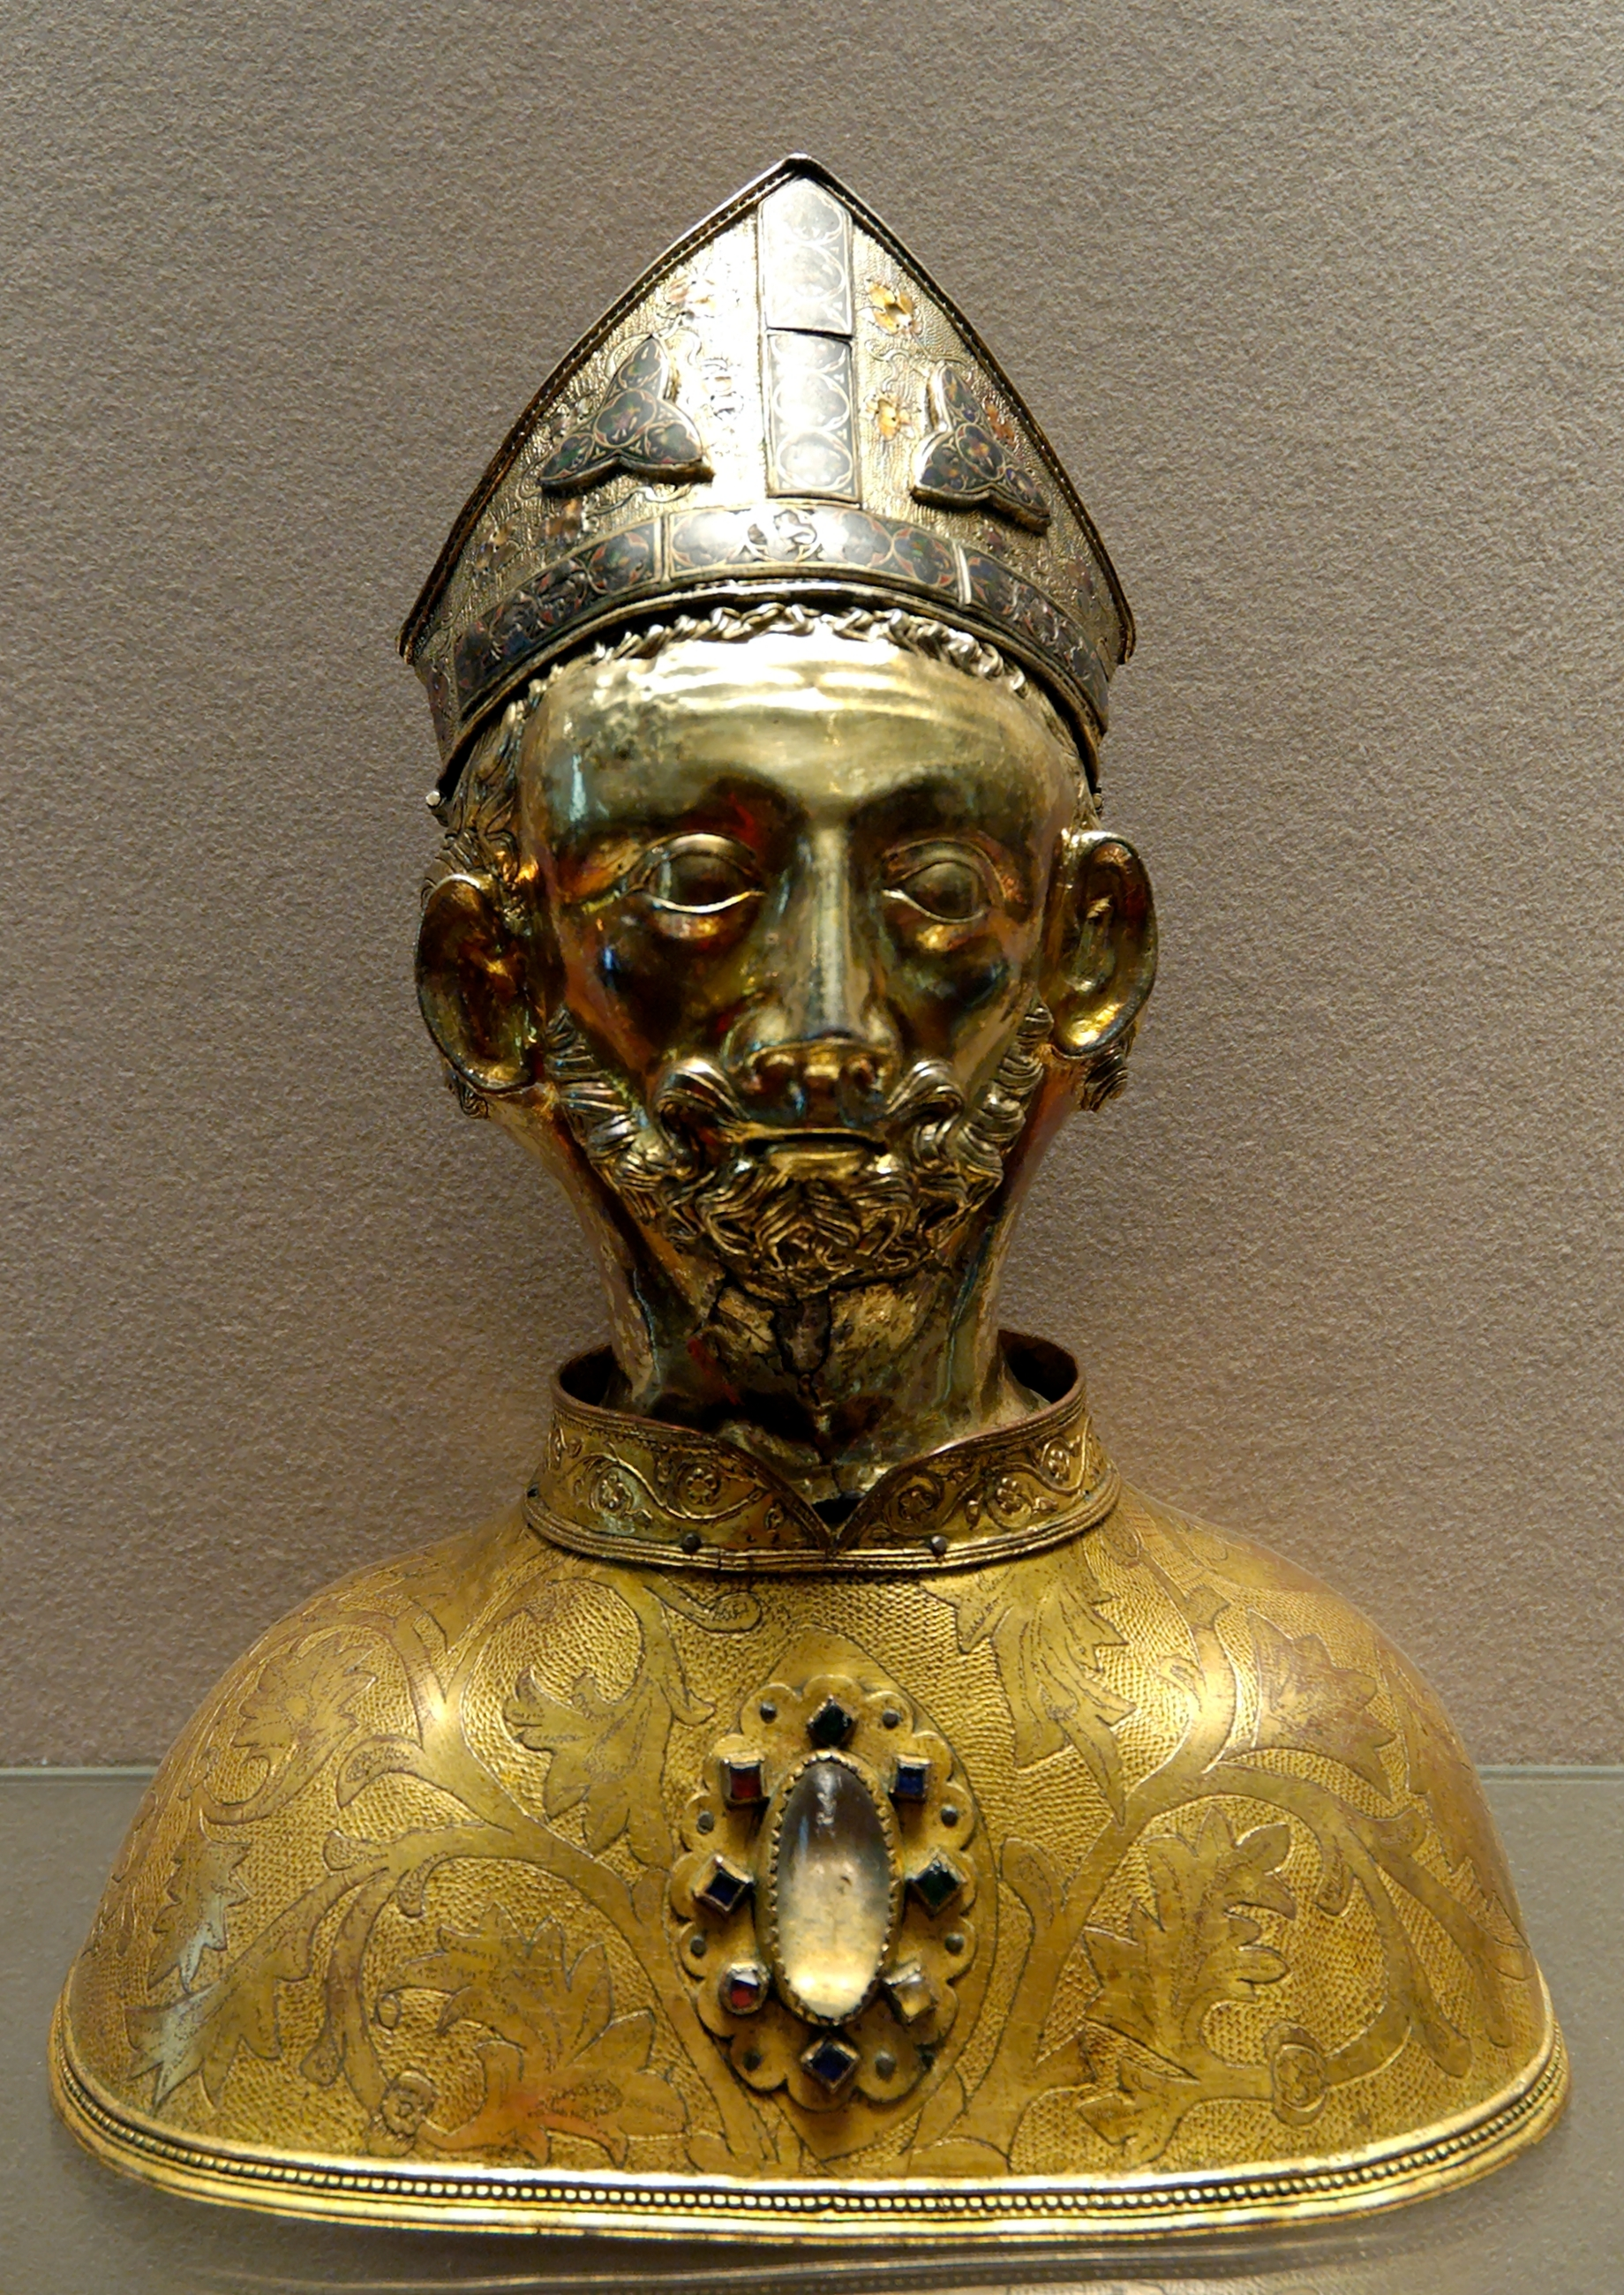 https://upload.wikimedia.org/wikipedia/commons/7/74/Head_reliquary_Martin_Louvre_OA6459.jpg